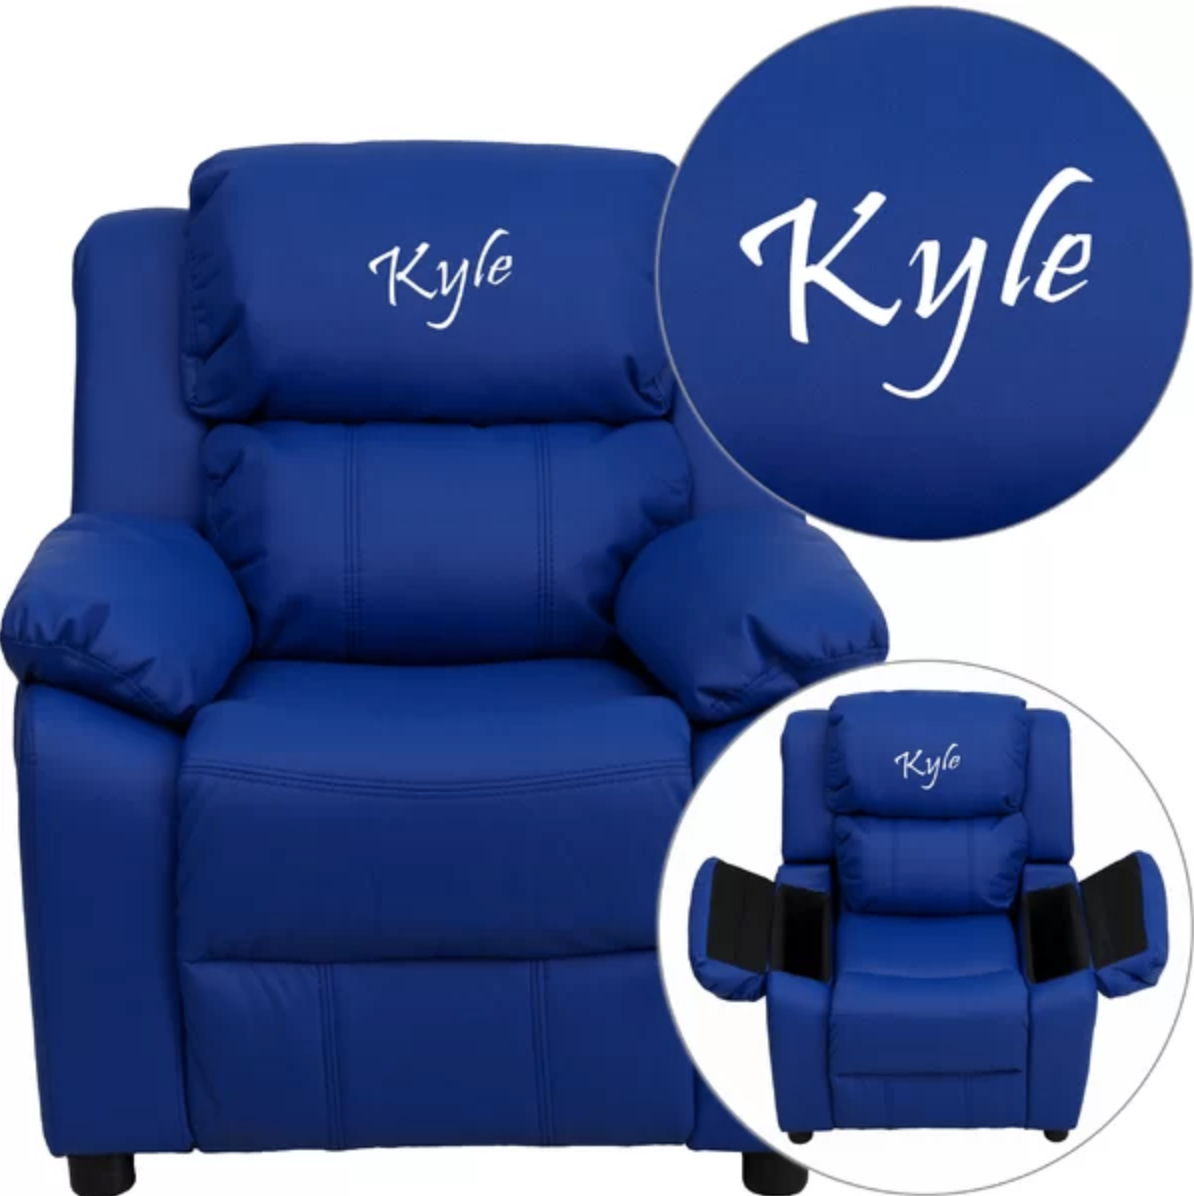 kyle-personalized-recliner